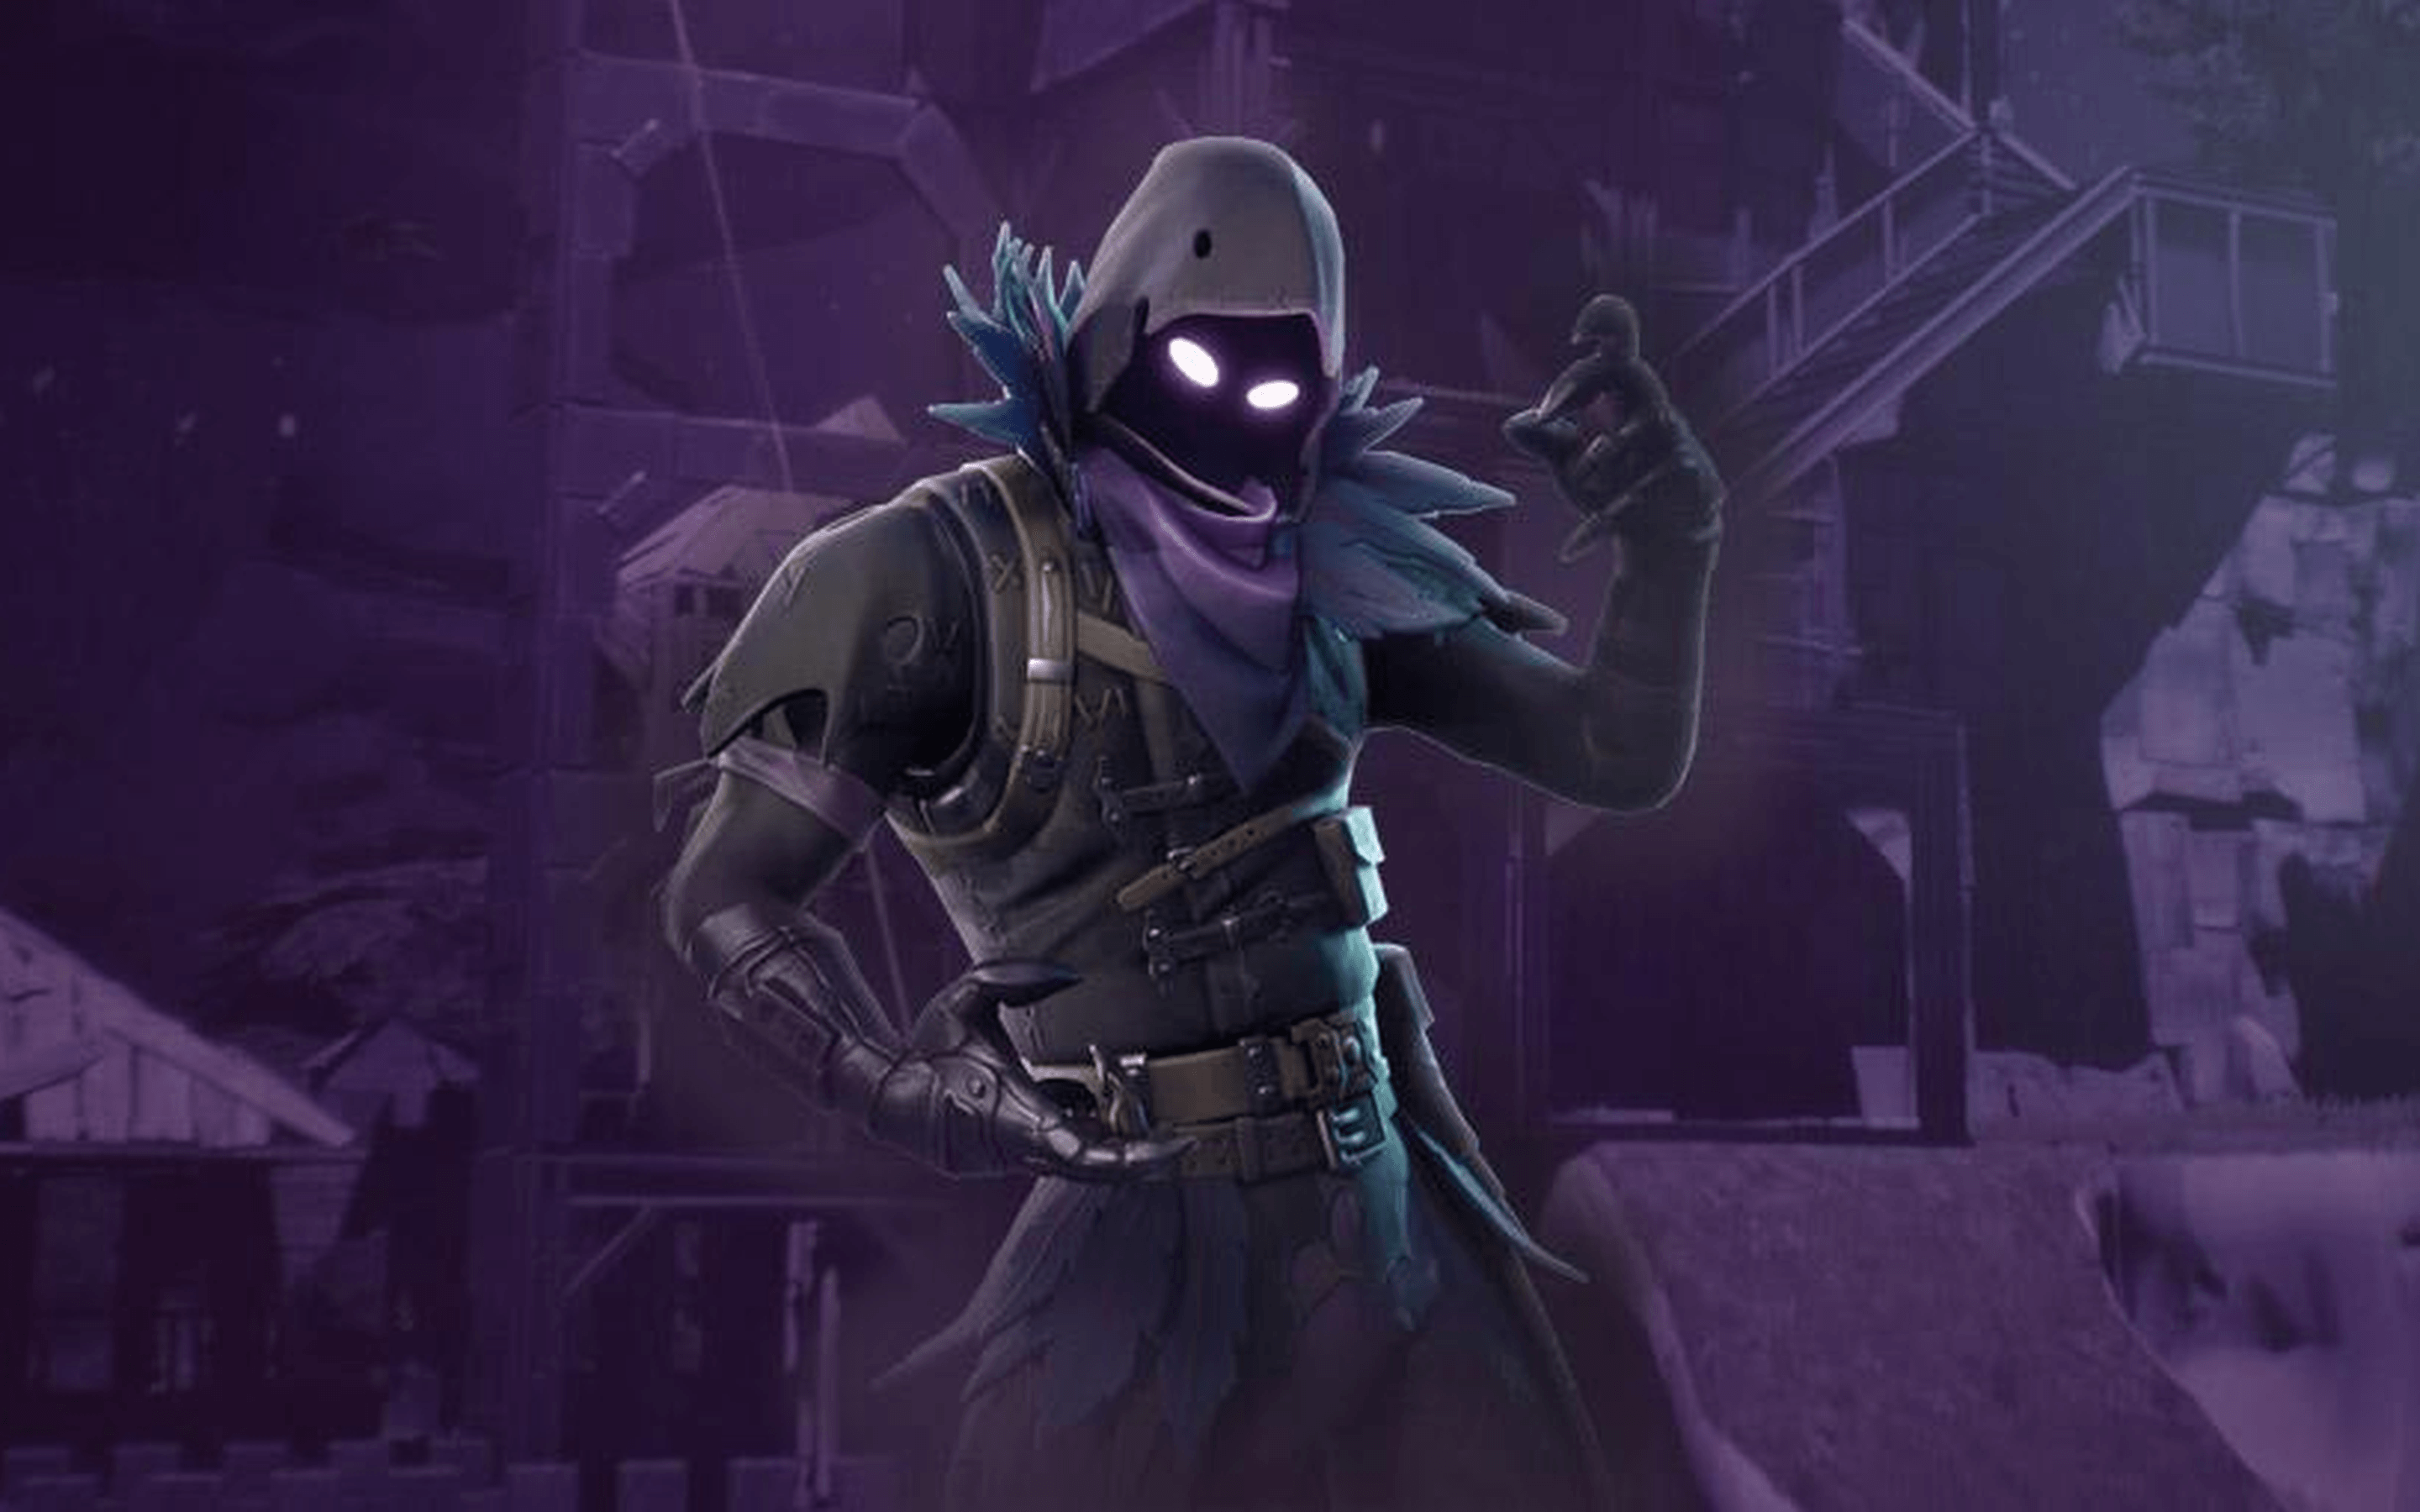 Fortnite raven wallpapers top free fortnite raven - 4k fortnite wallpaper ...